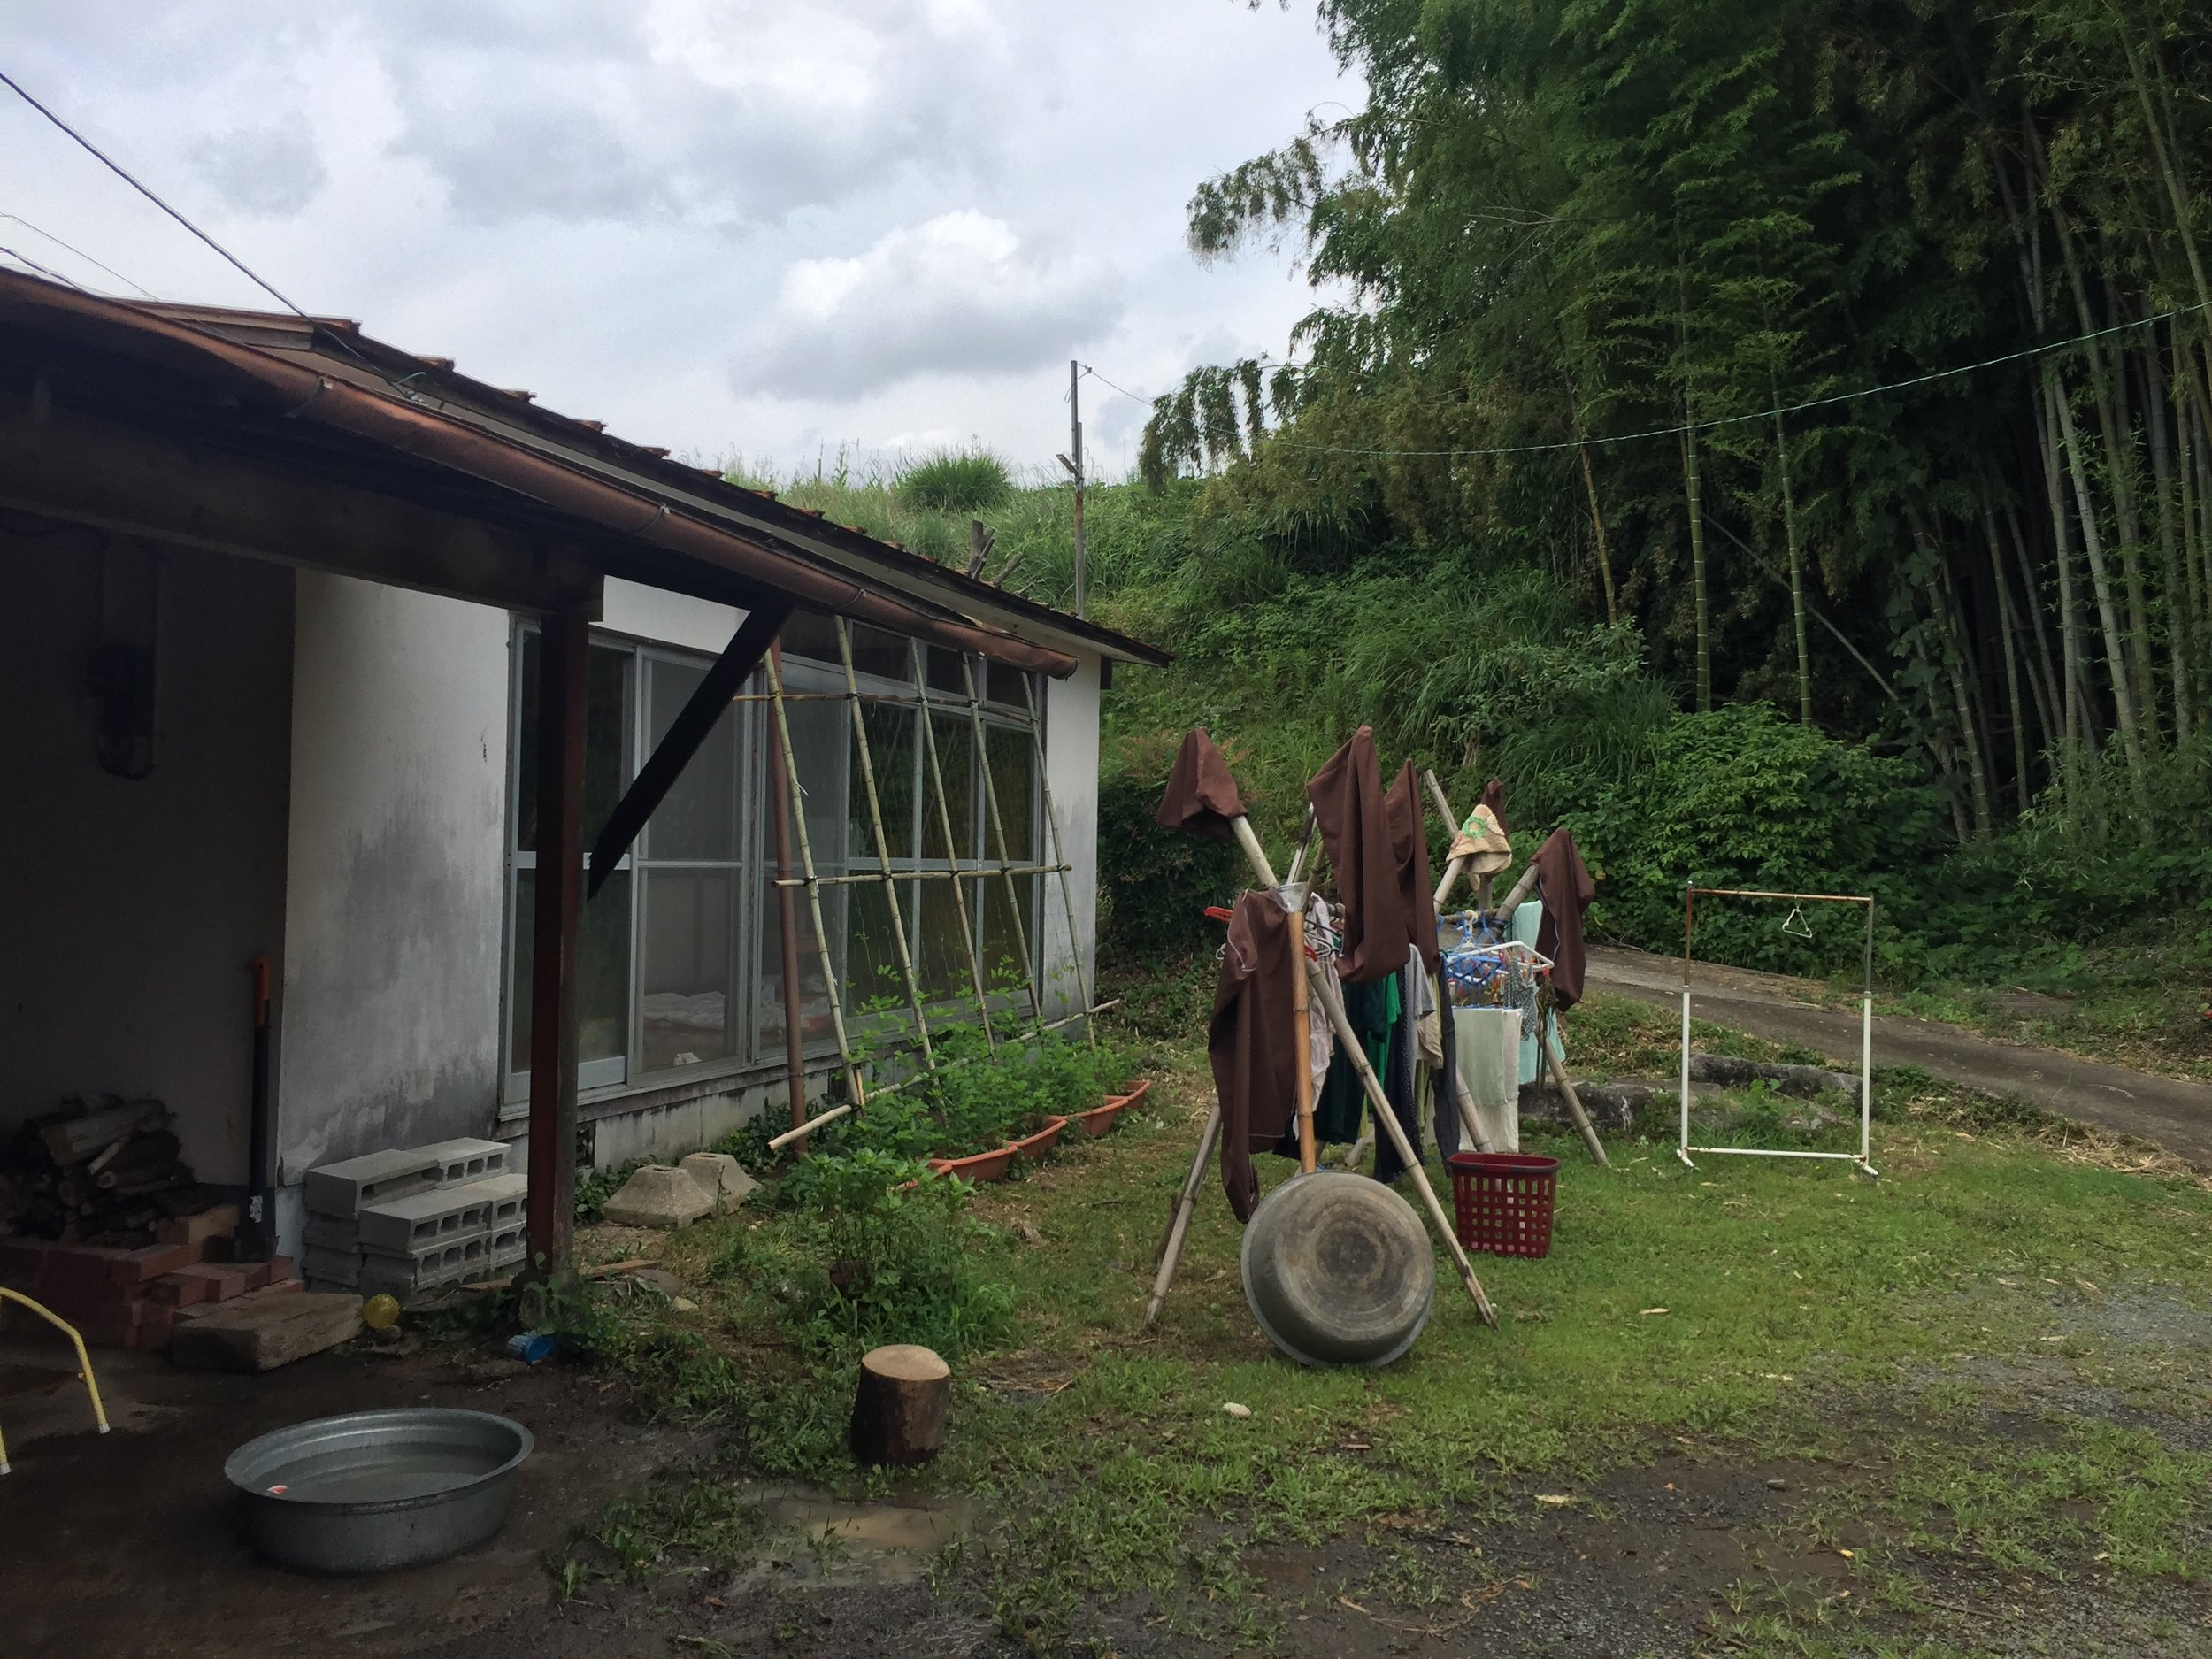 WWOOF in japan with a japanese country lifestyle in kikuchi, kumamoto on a cloudy summer day with bamboo forest and clothes drying